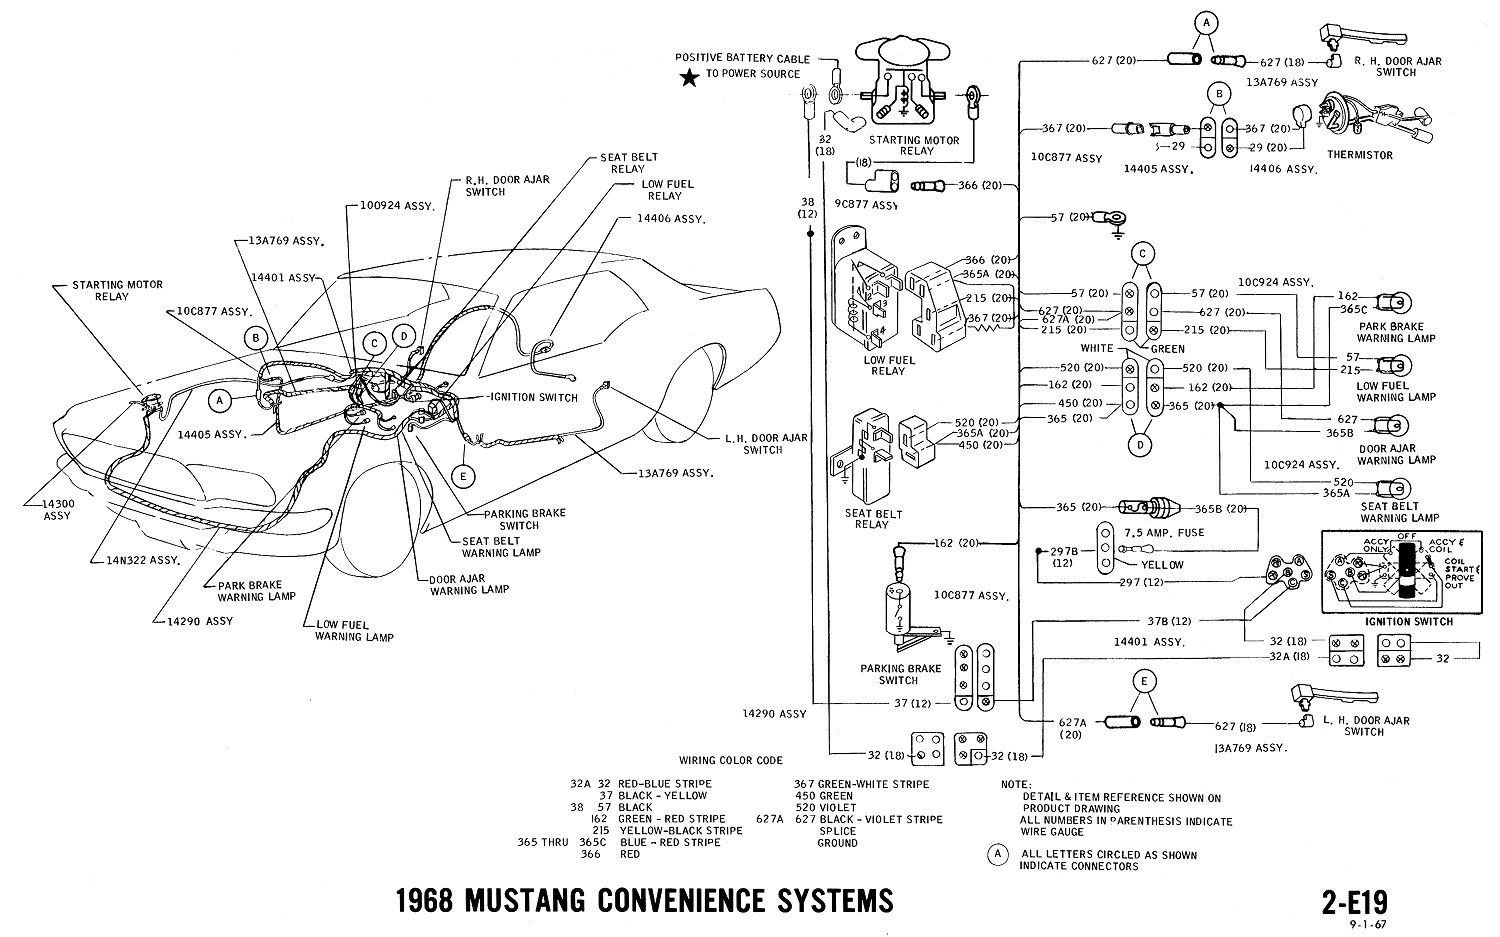 1968 Mustang Wiring Diagram Vacuum Schematics on 1967 camaro wiring diagram pdf